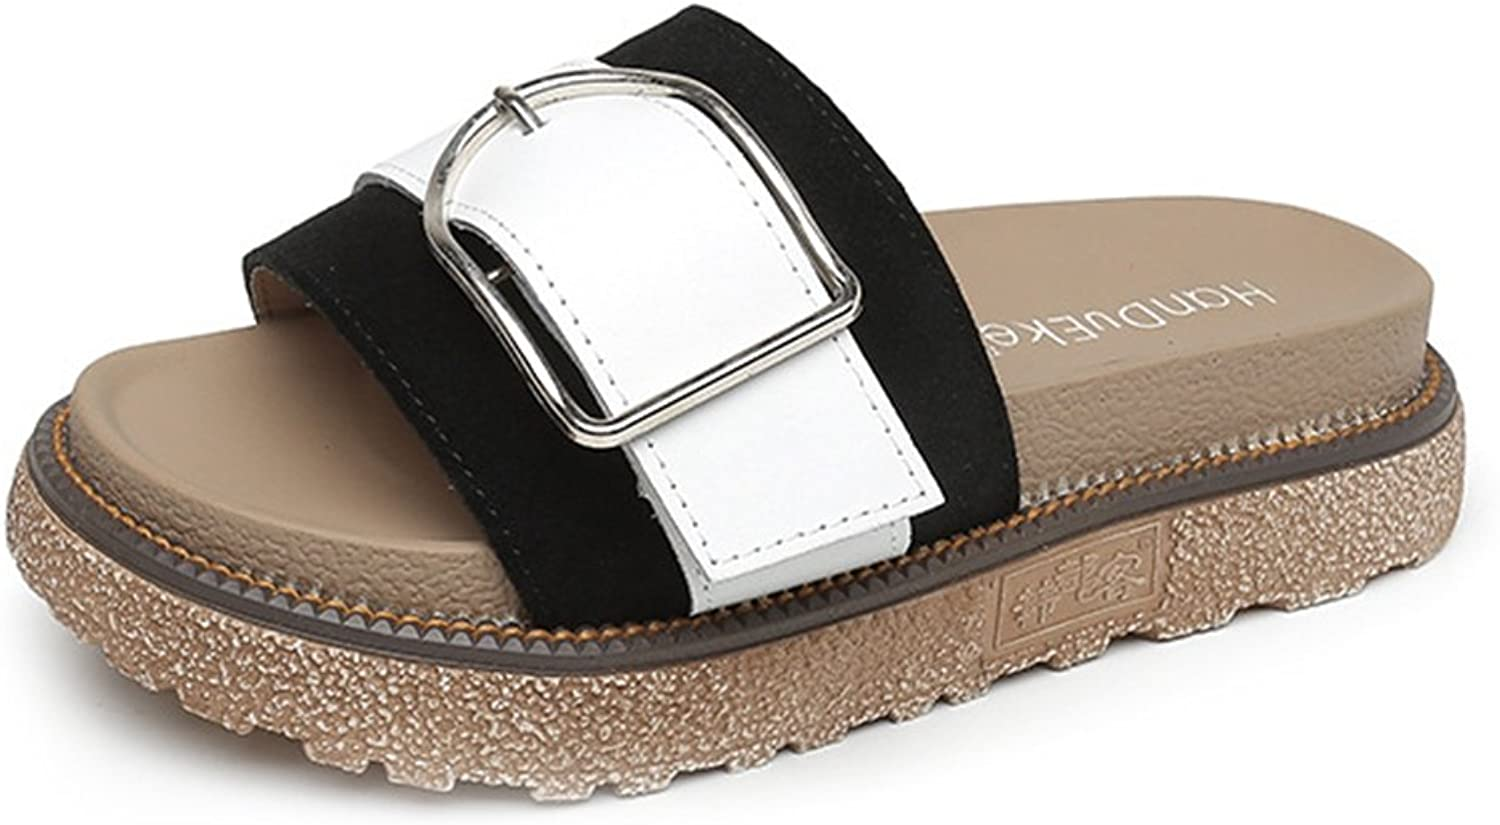 CYBLING Womens Slip On Slide Flat Sandals Platform Wedge Sandal shoes with Buckle Accent